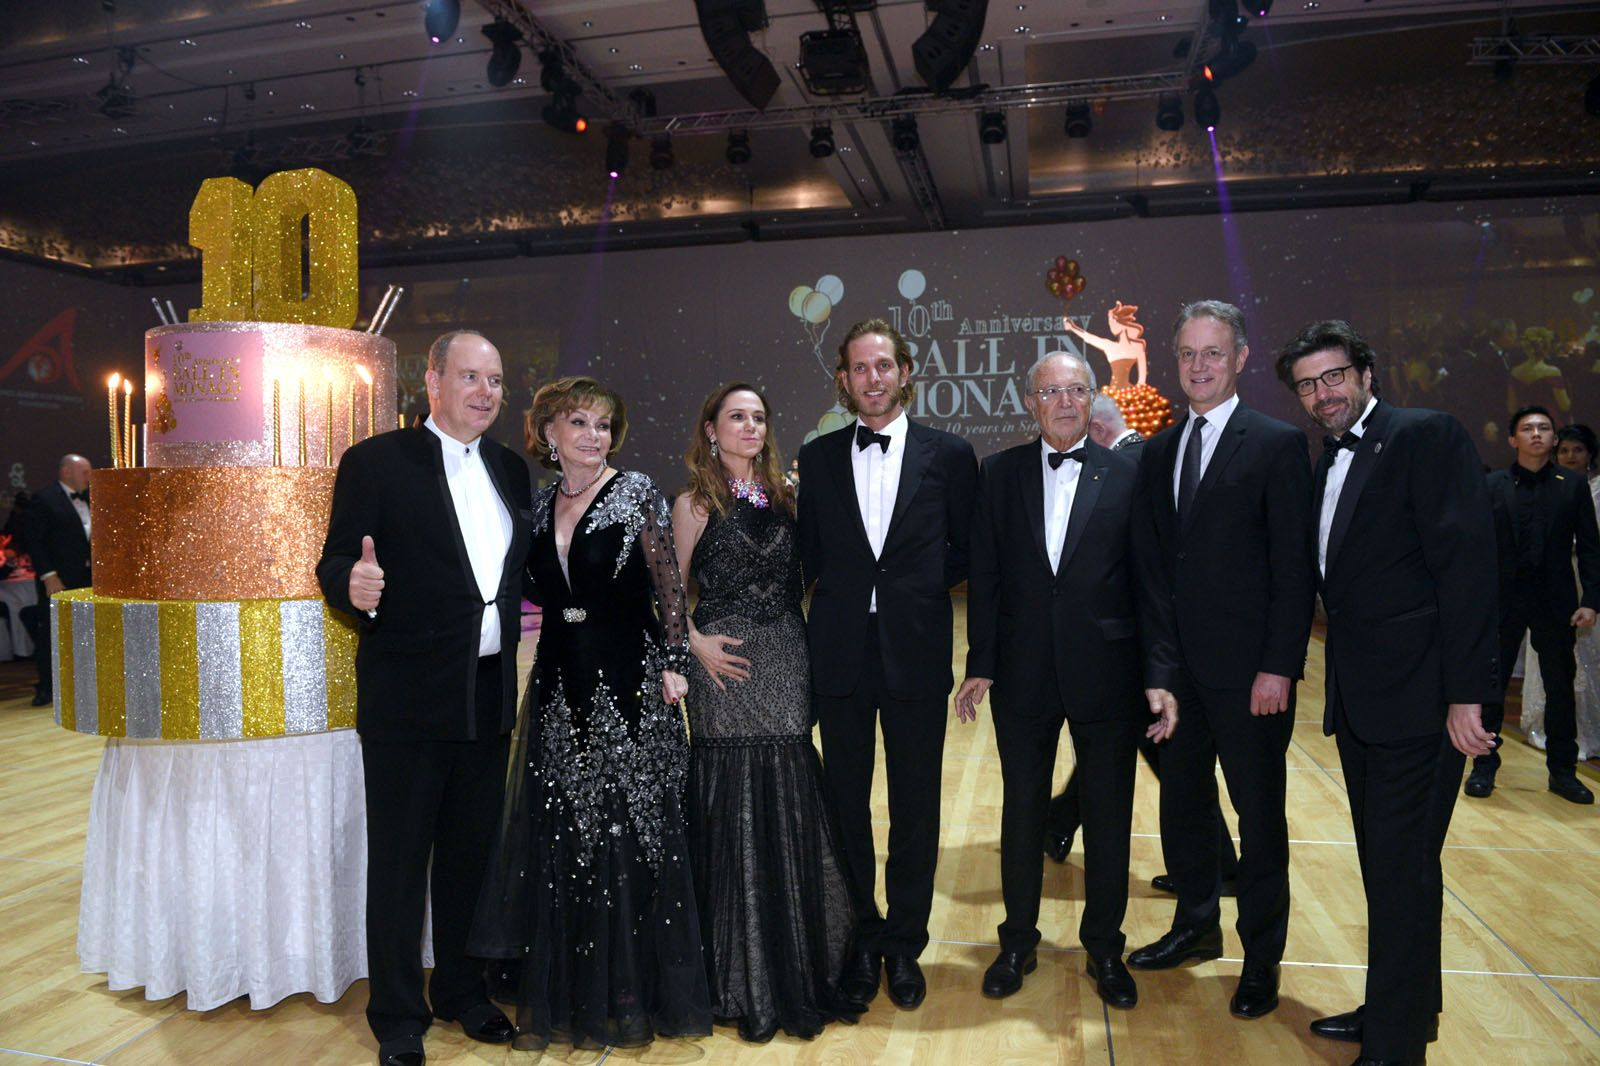 Inside The Spectacular 10th Anniversary Of The Ball In Monaco